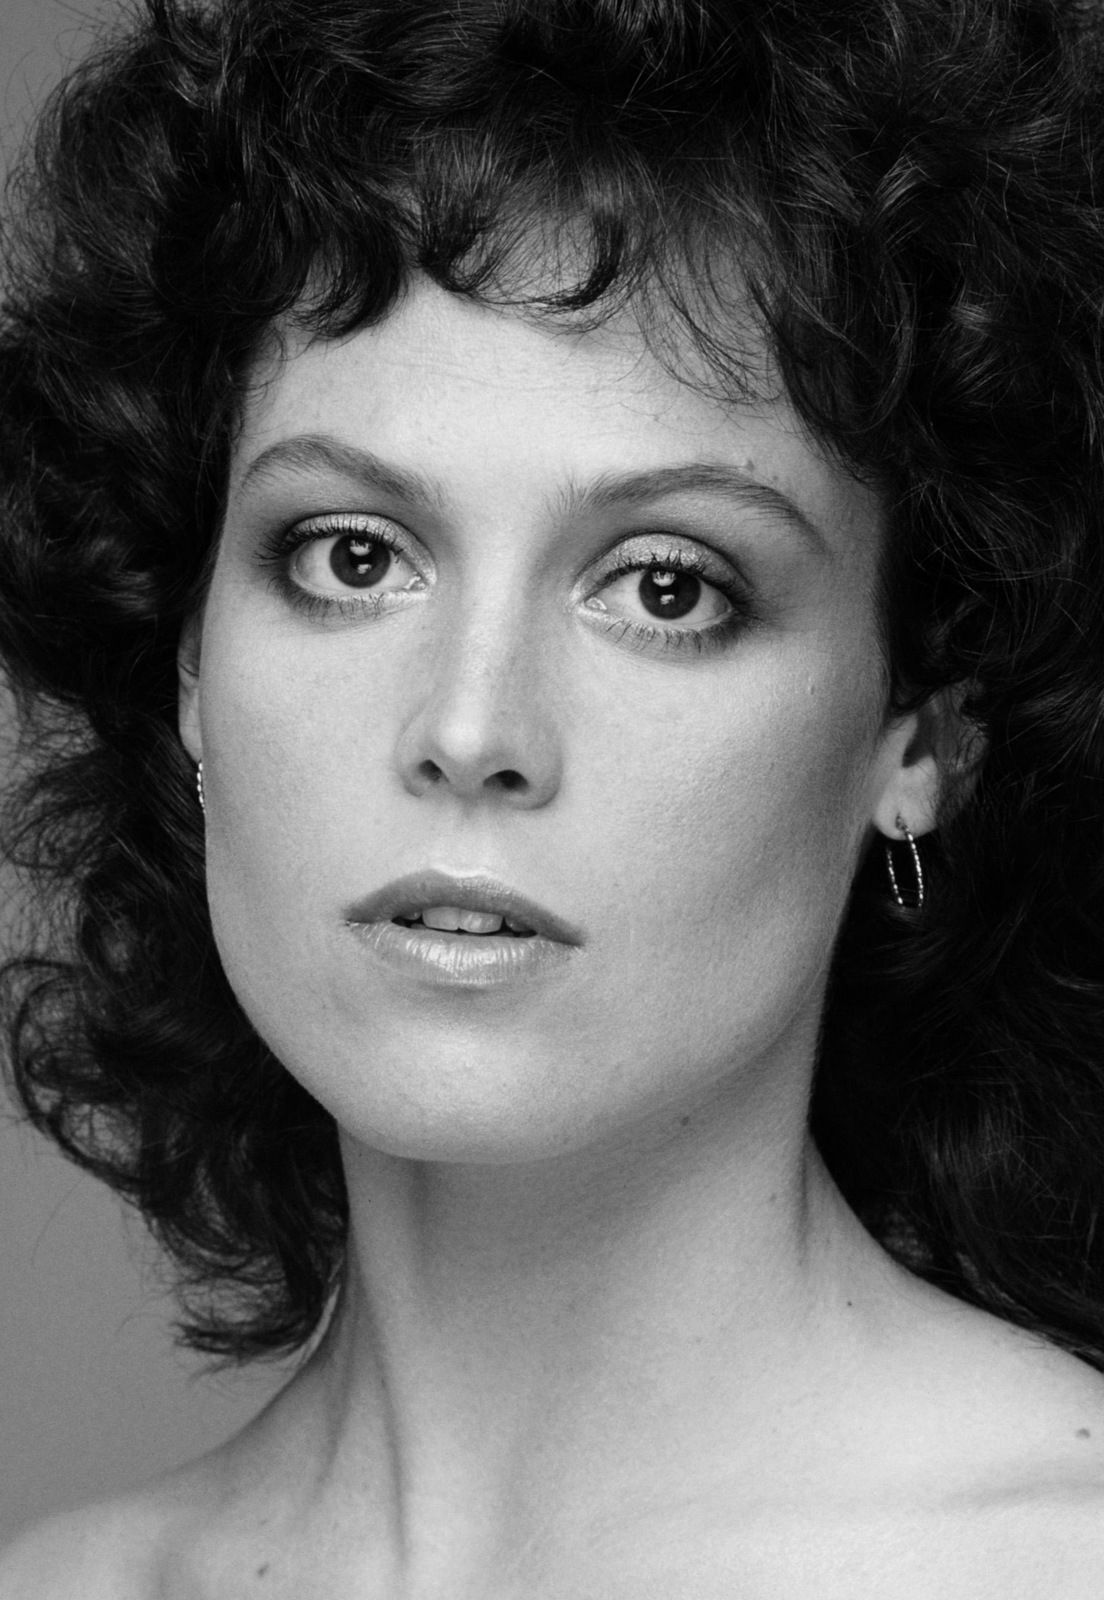 Sigourney Weaver nude (63 photos), young Bikini, Instagram, legs 2020